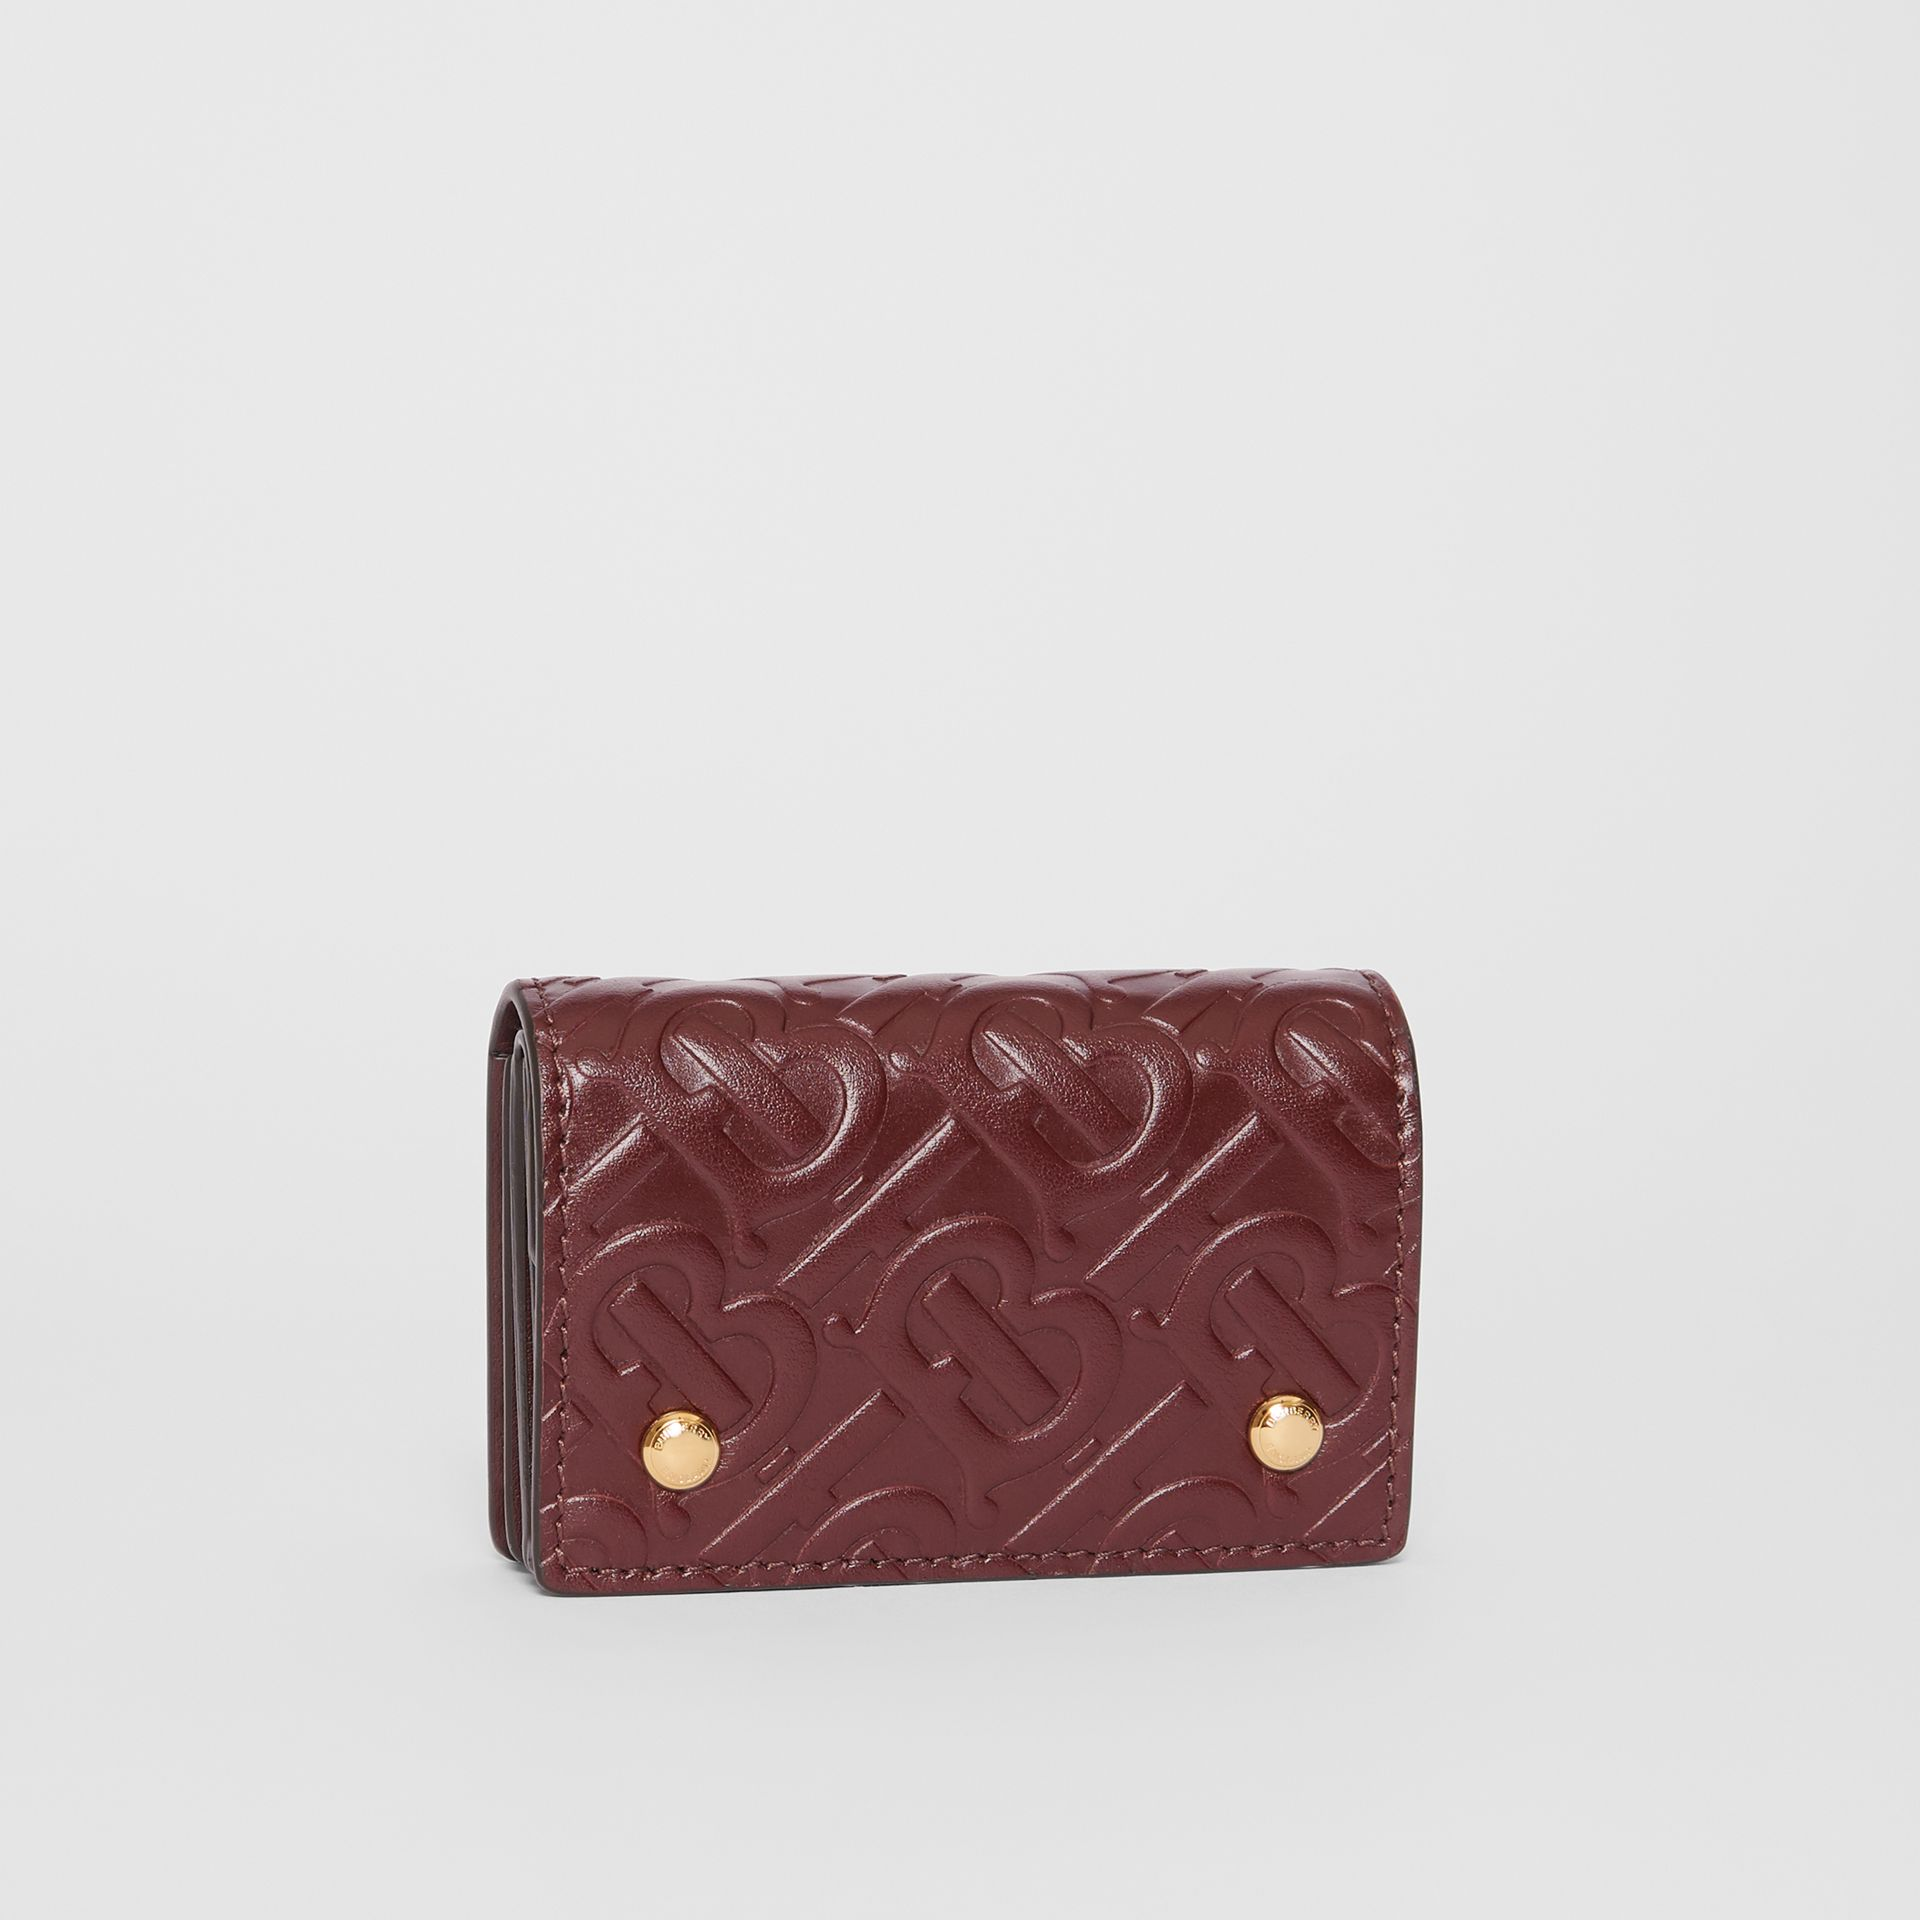 Monogram Leather Card Case in Oxblood | Burberry - gallery image 3